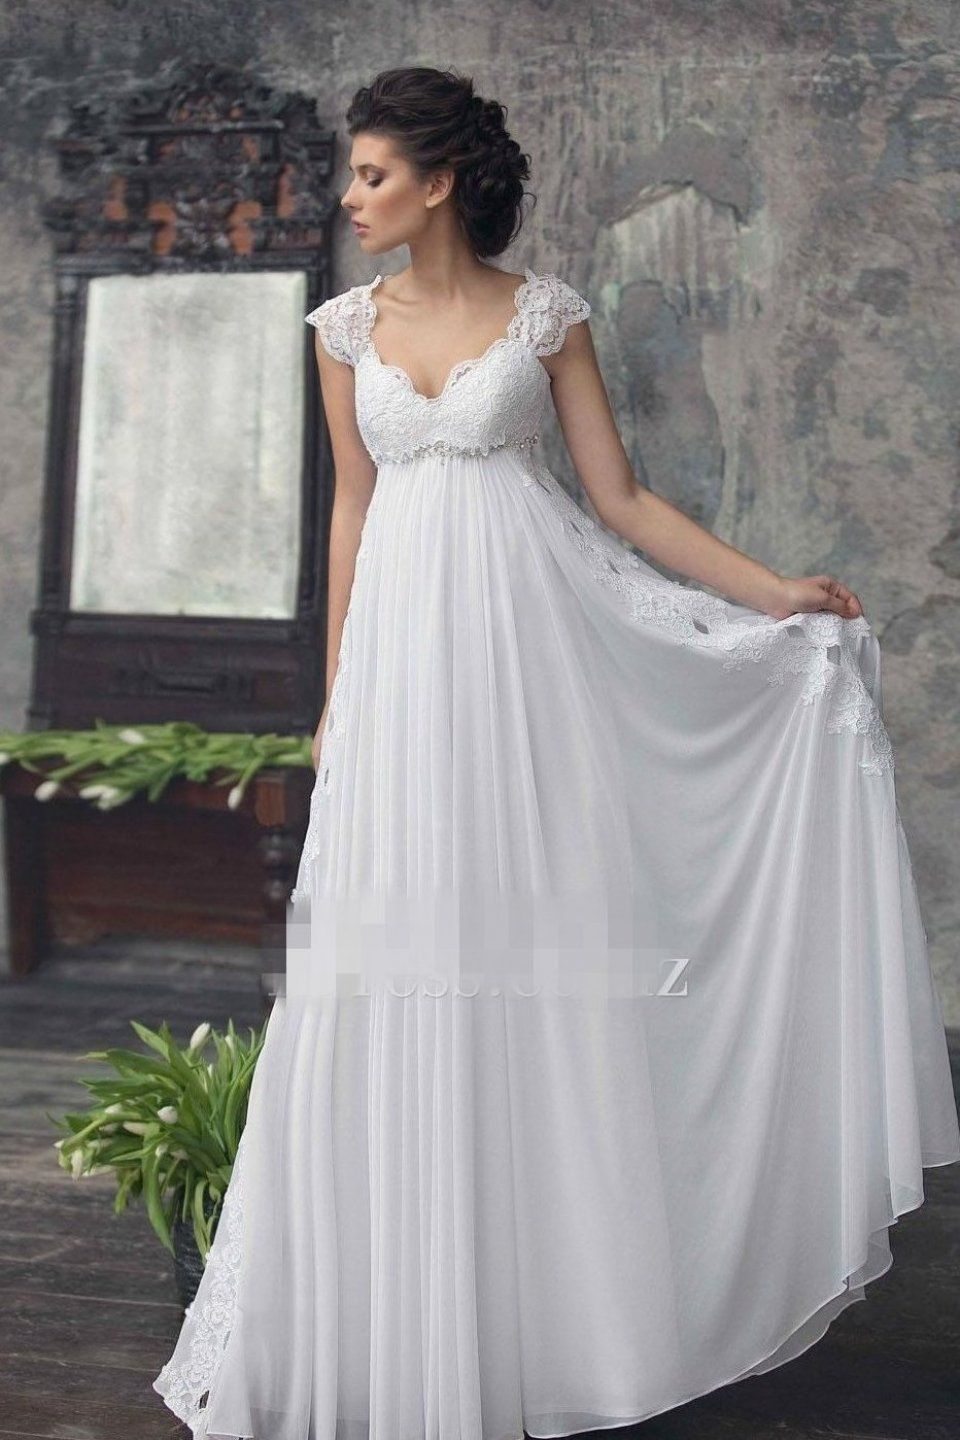 2017 Empire Maternity Wedding Dresses Beaded Lace Chiffon Weddingdresses Weddingdr In 2020 Empire Wedding Dress Empire Waist Wedding Dress Bohemian Wedding Gown